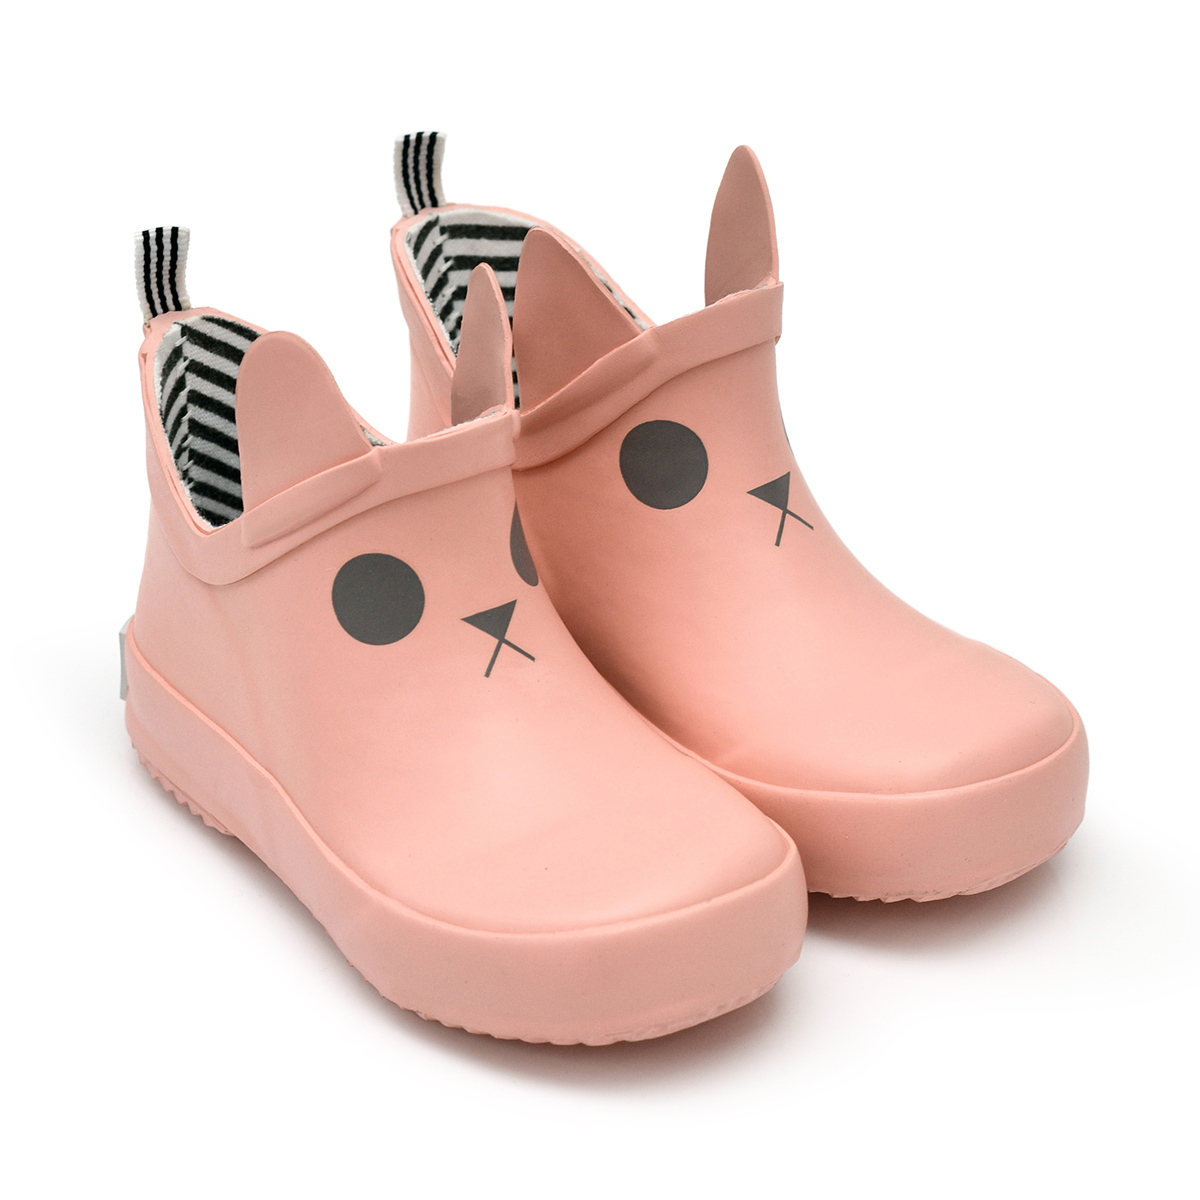 Chaussons & Chaussures Bottines Kerran Salmon Pink - 26 Bottines Kerran Salmon Pink - 26